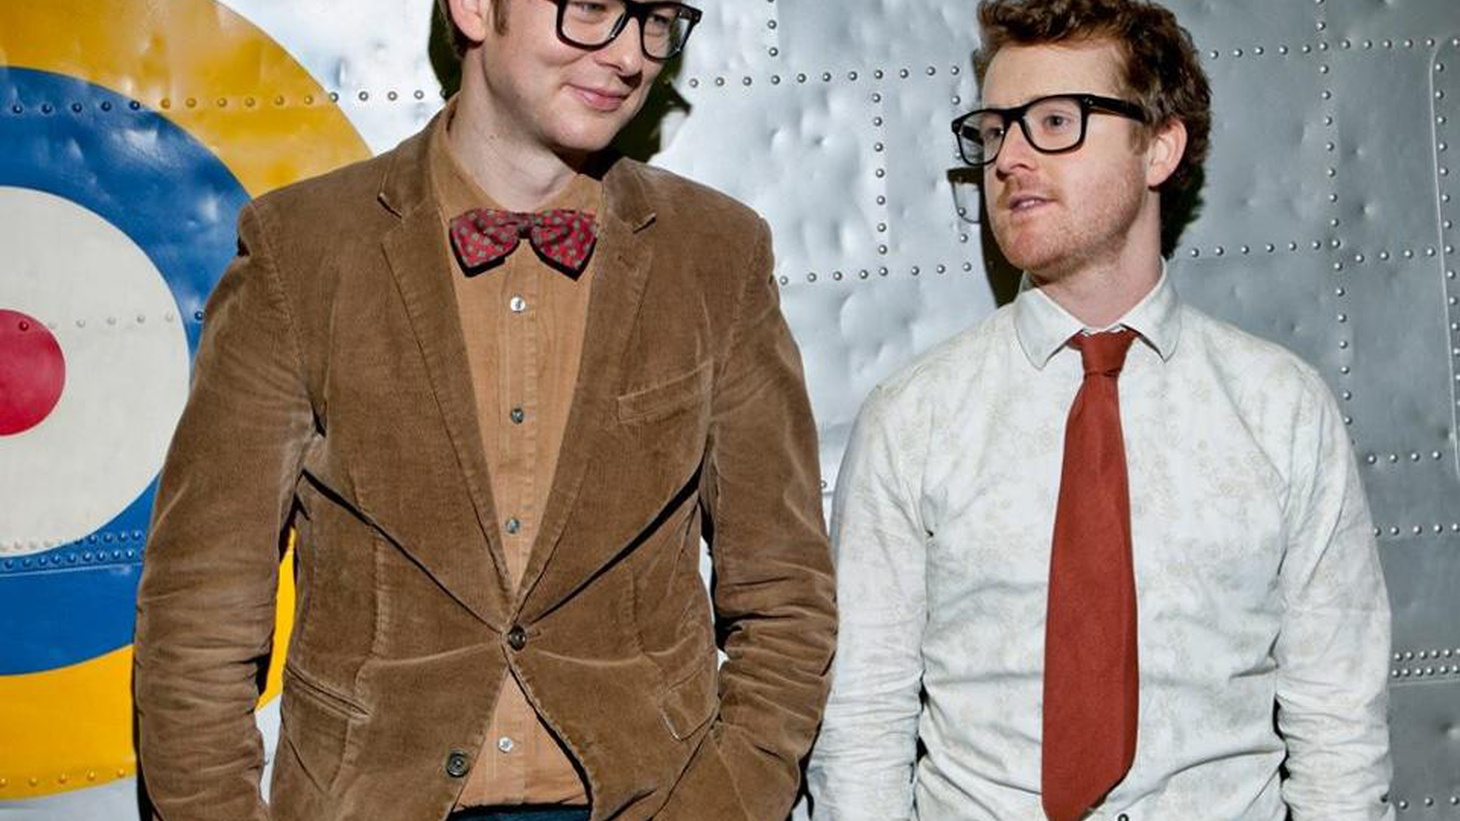 Instrumental duo Public Service Broadcasting released a compelling CD last year, a fast paced pastiche of audio samples culled from public information films and newsreels